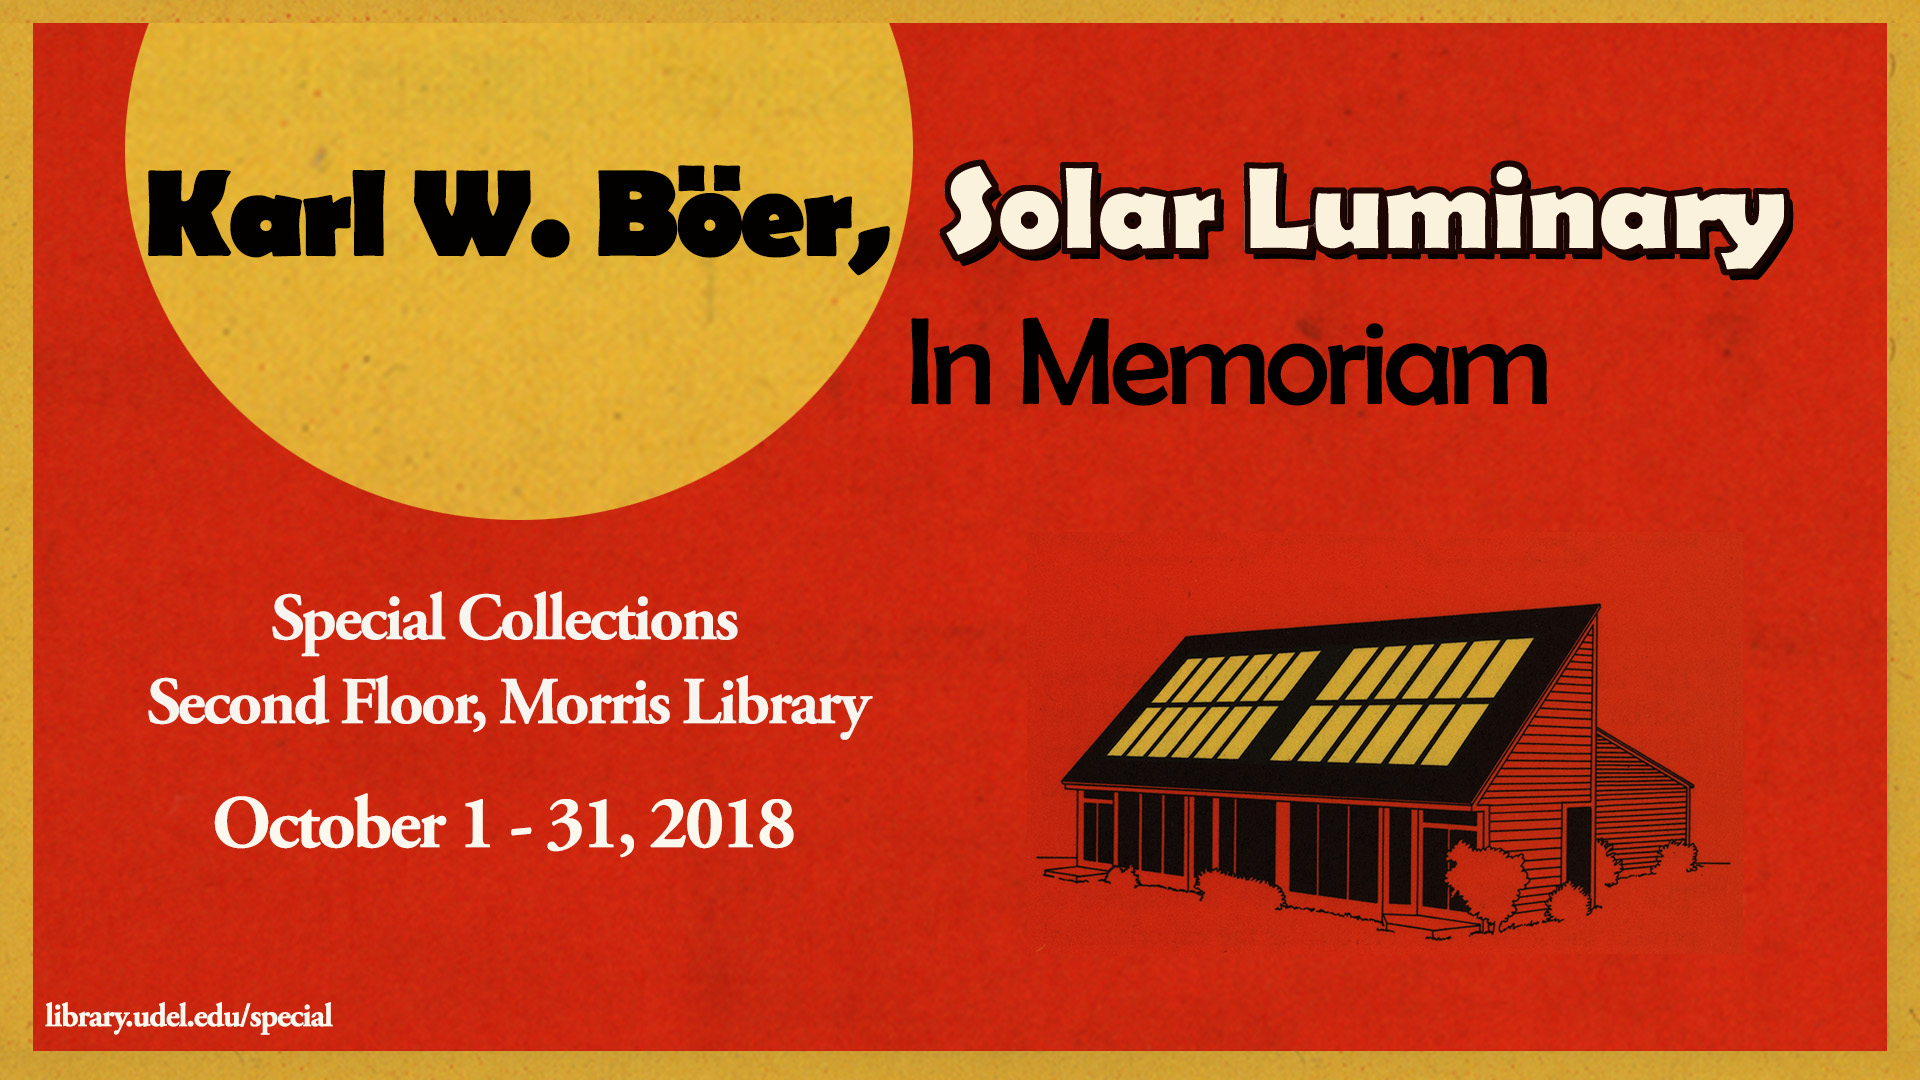 Karl W. Böer, Solar Luminary: In Memoriam